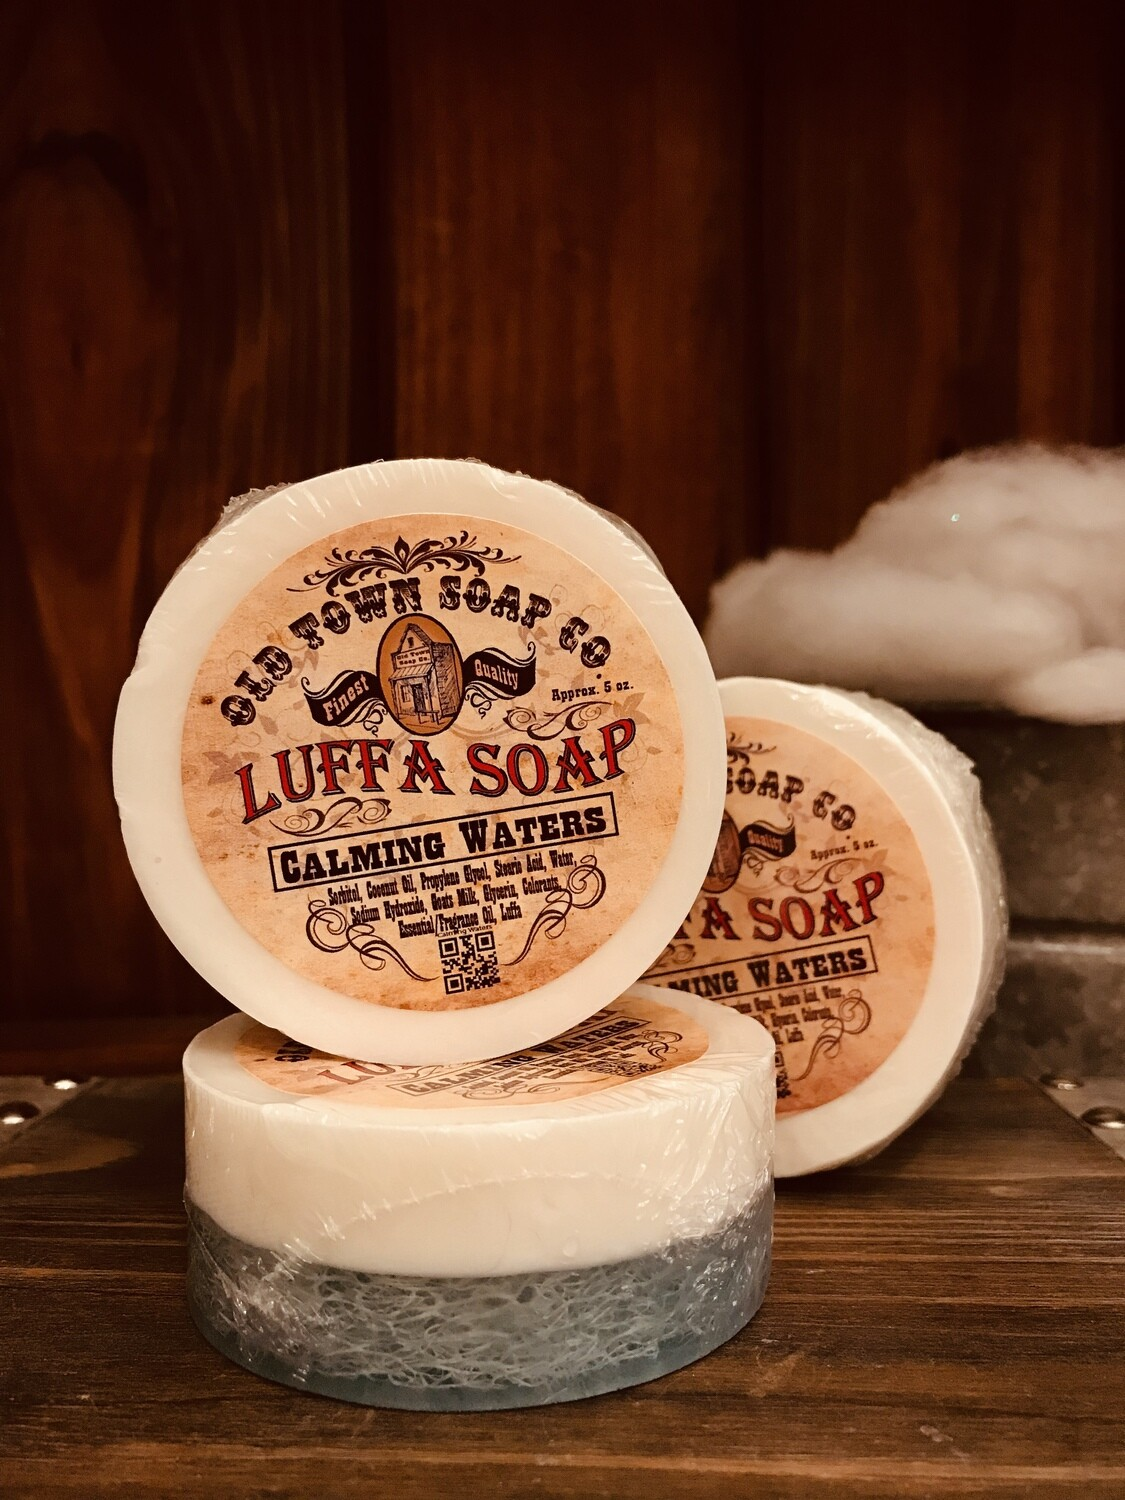 Calming Waters -Luffa Soap